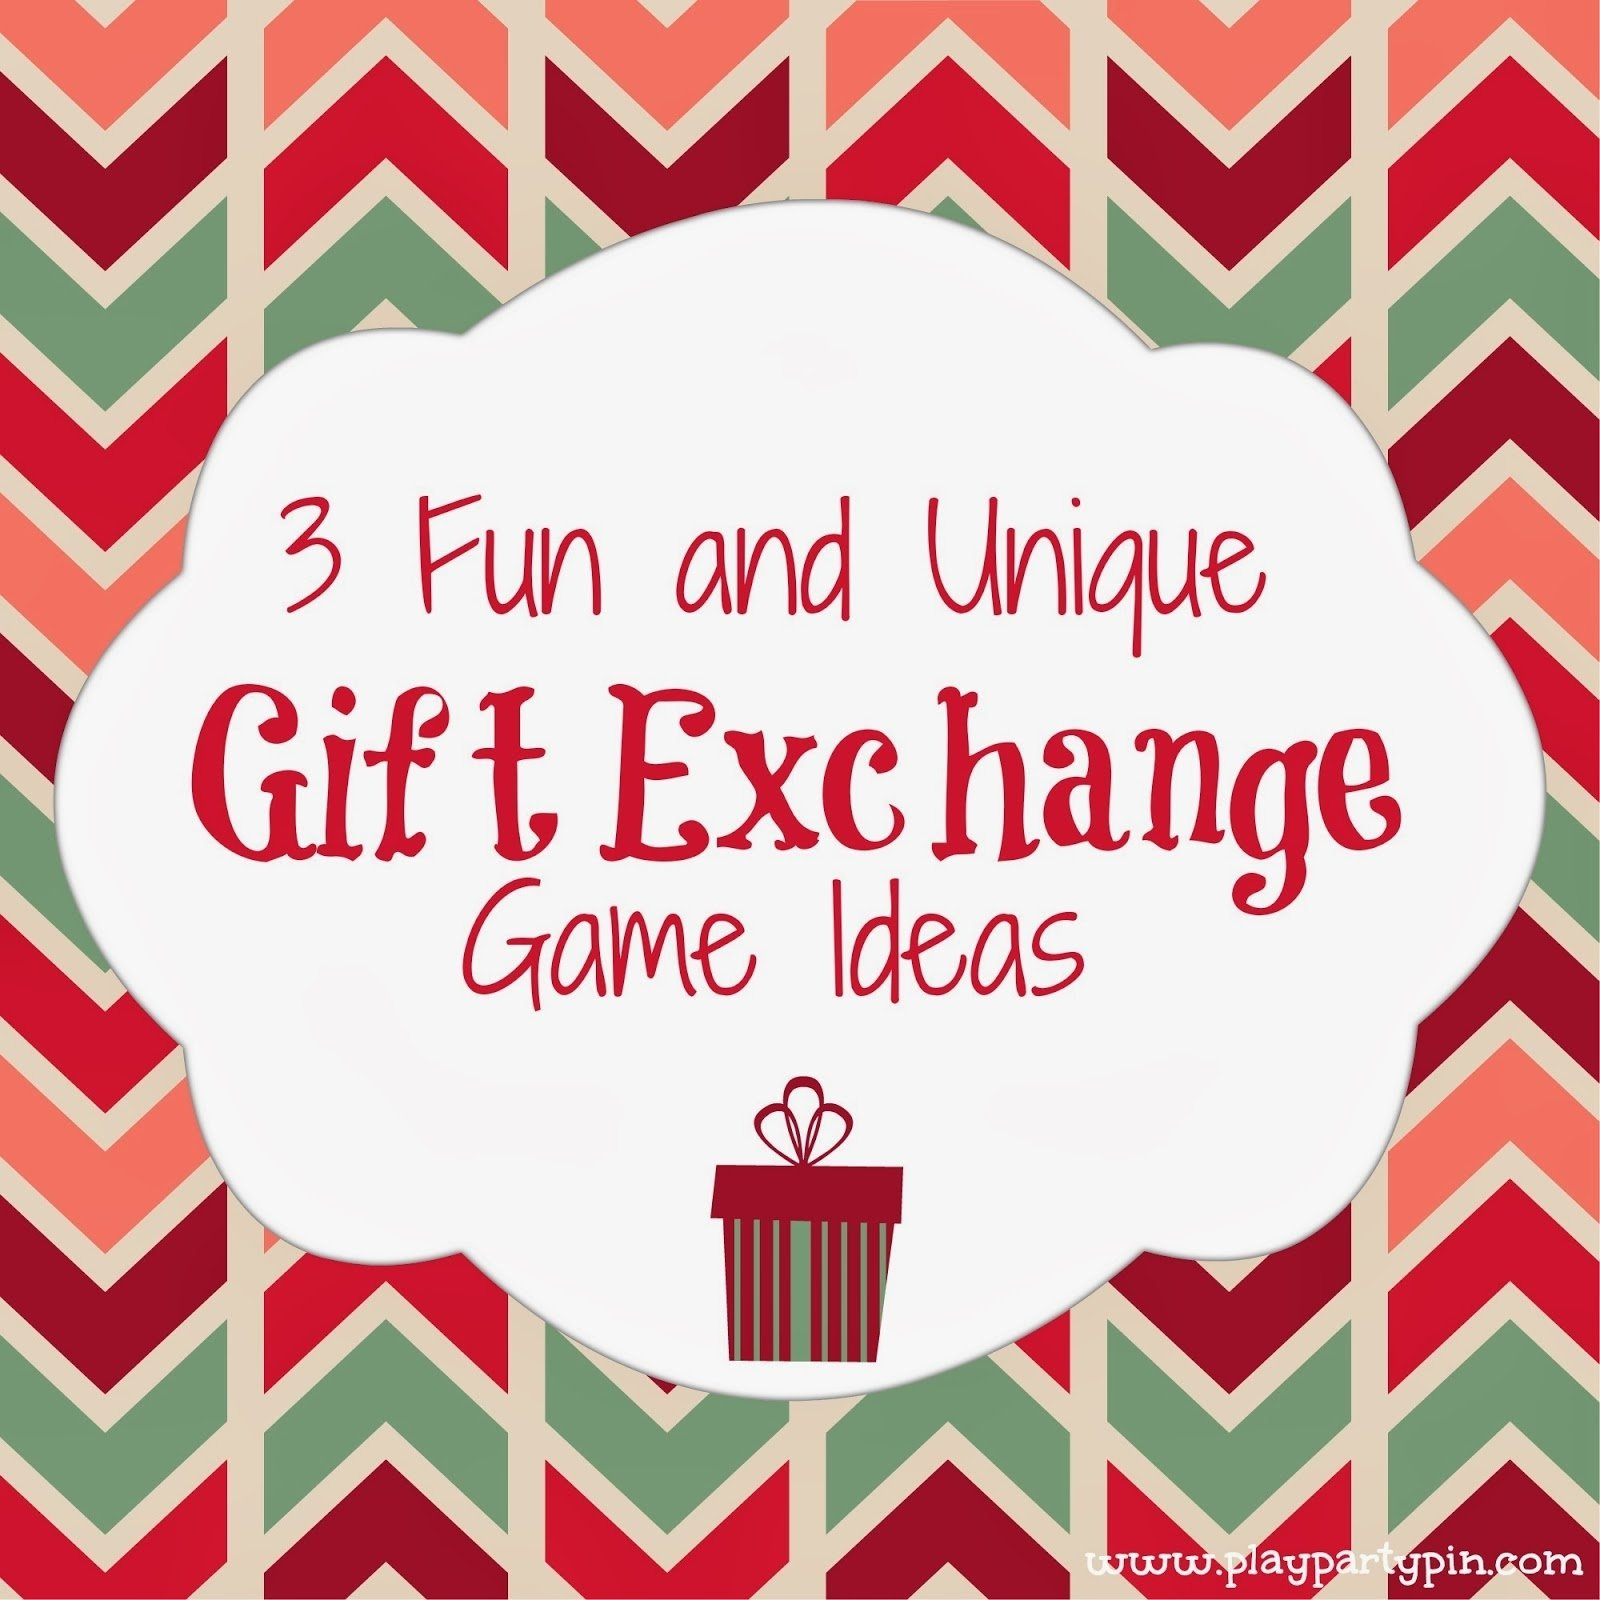 10 Attractive Gift Exchange Ideas For Christmas top best christmas gift ideas the heavy power list com gifts for 1 2021